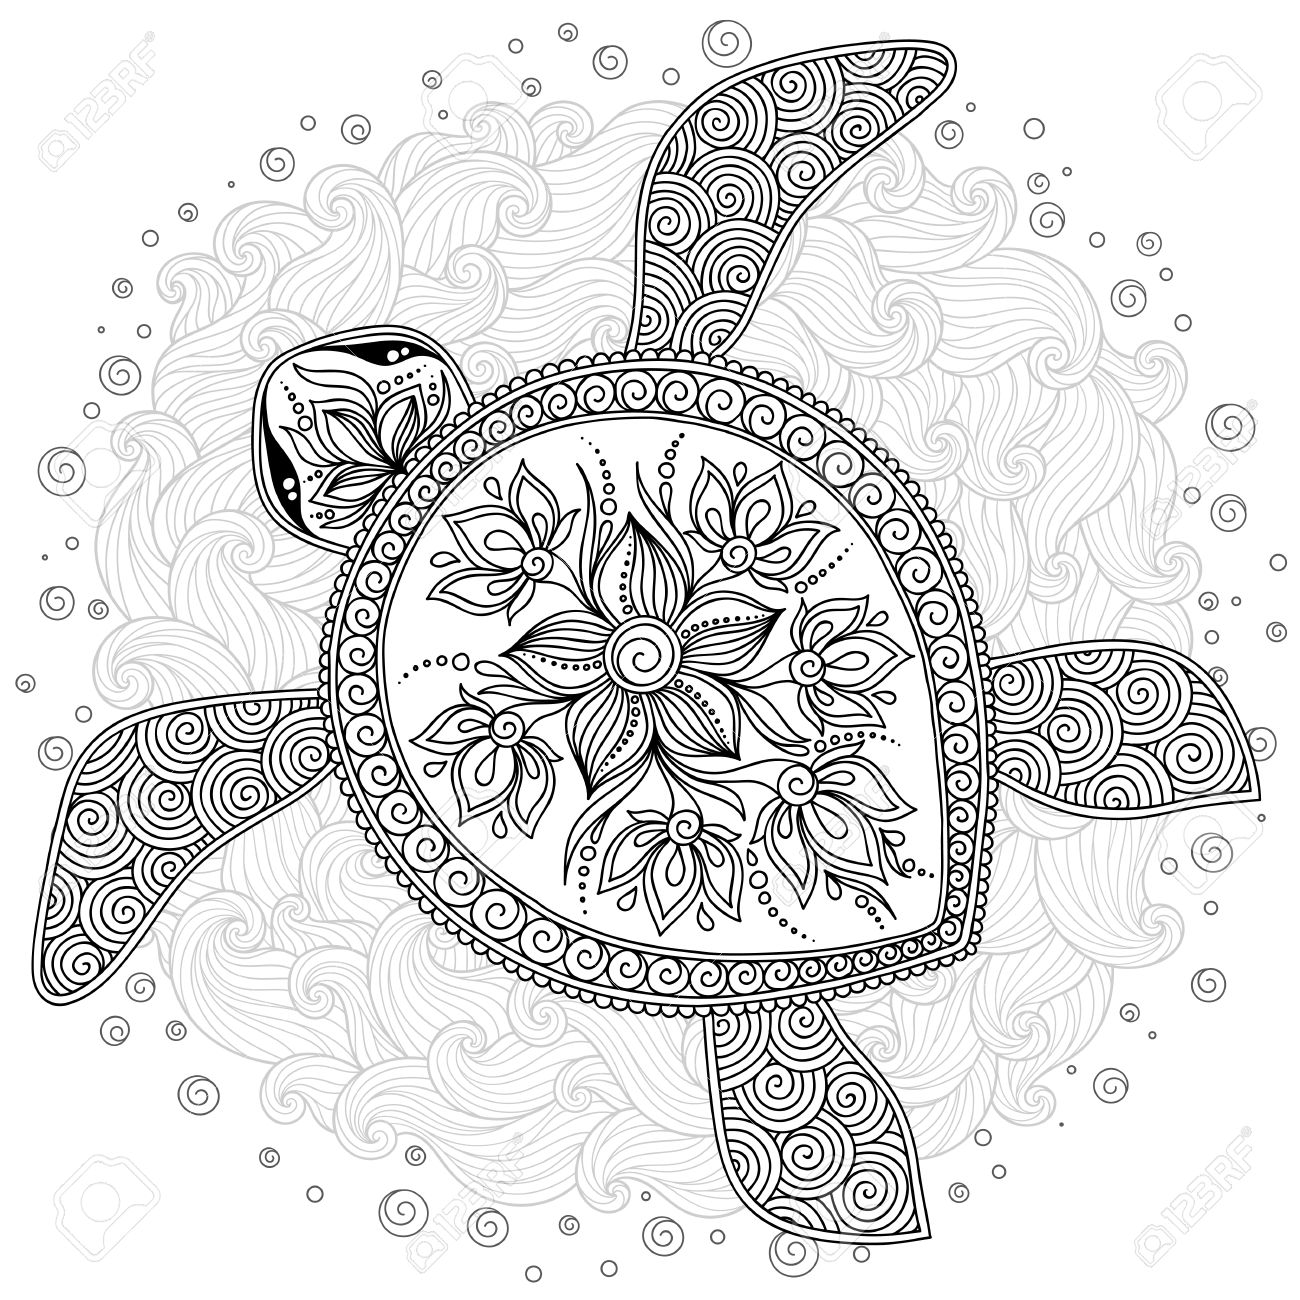 pattern for coloring book coloring book pages for kids and adults decorative graphic turtle henna me